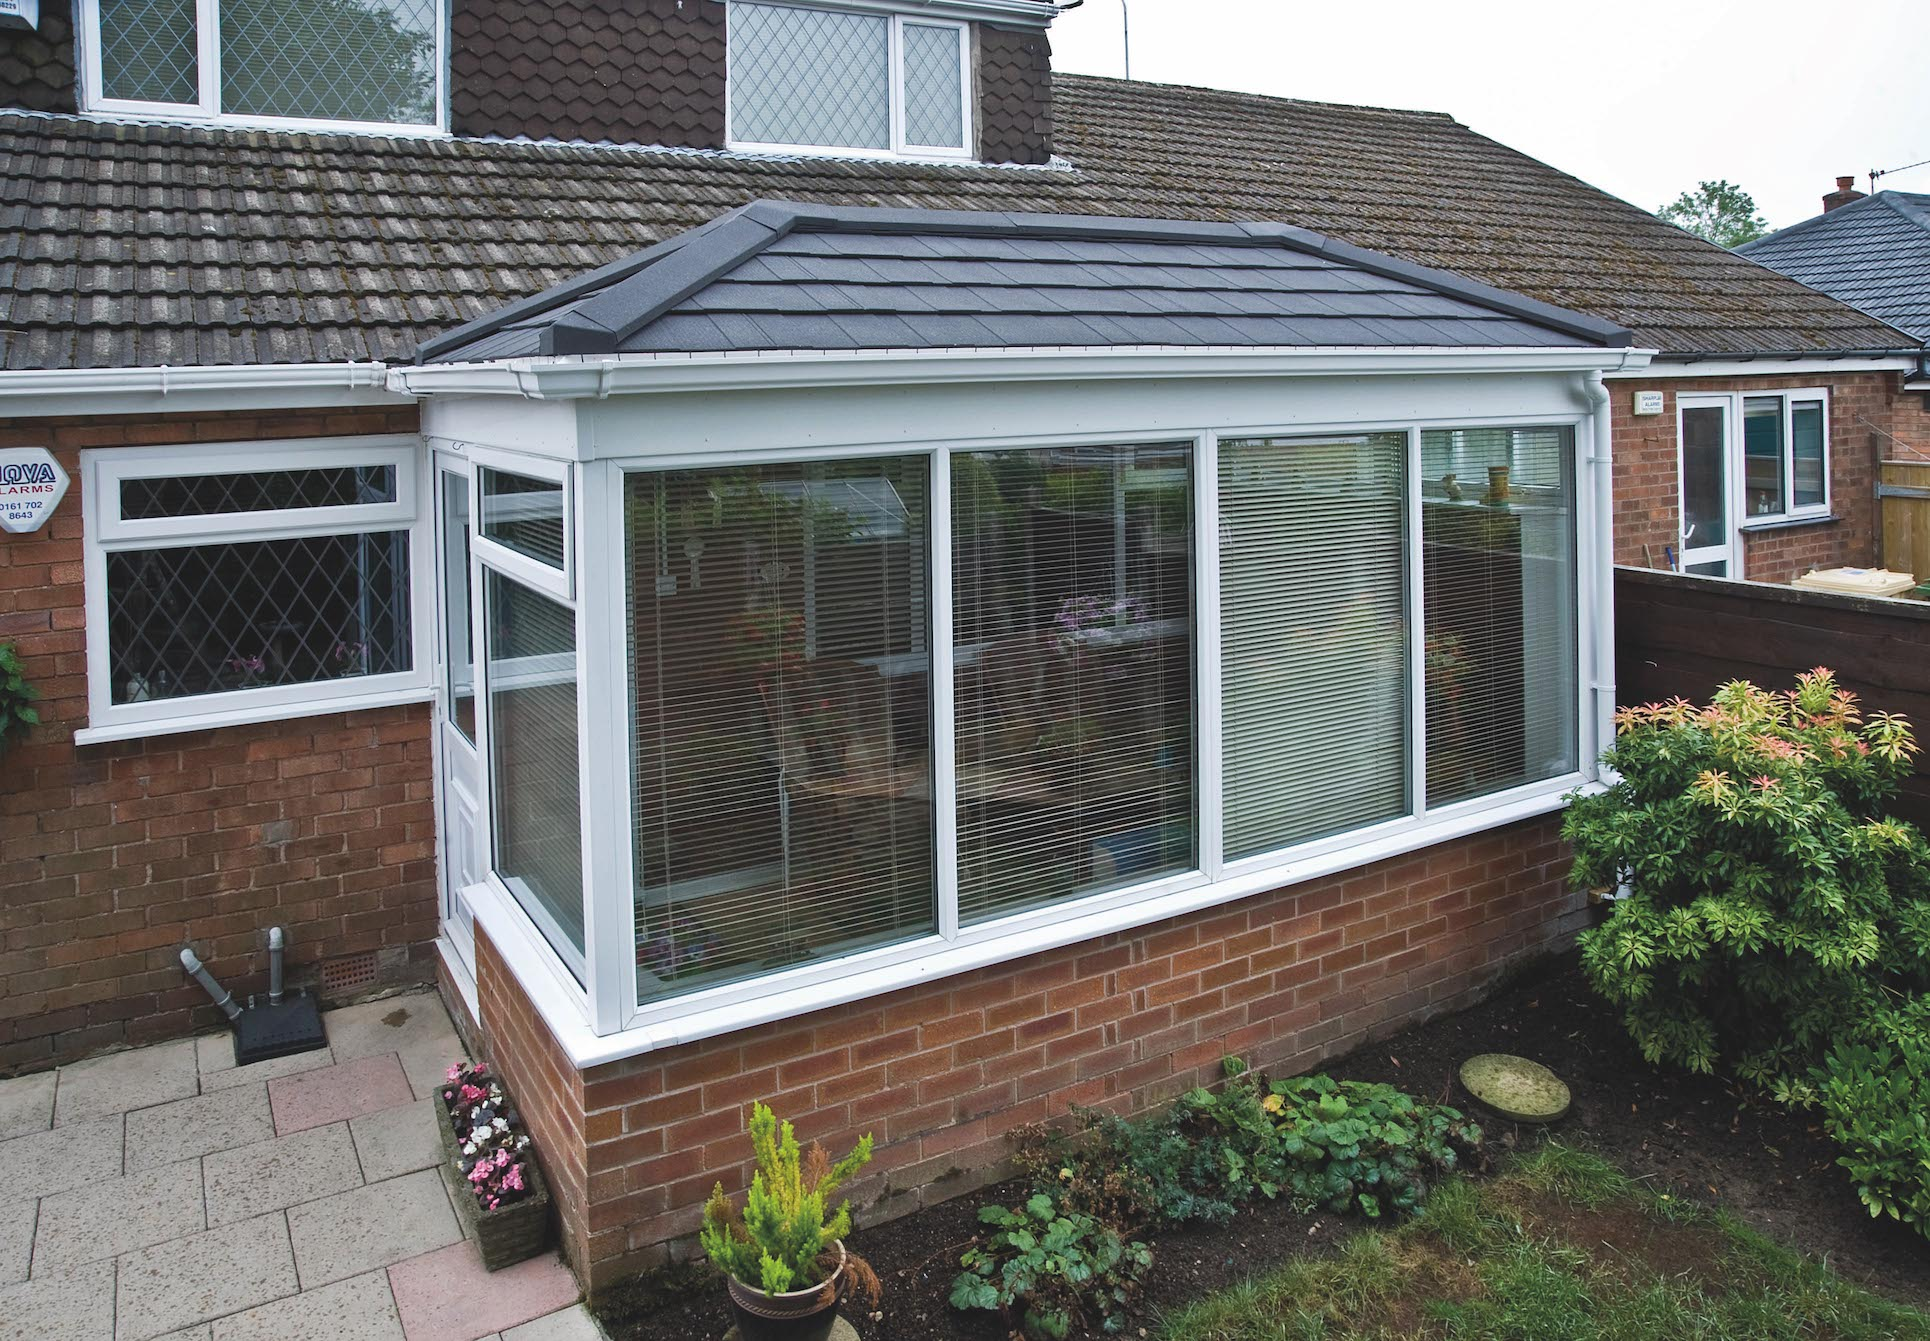 Conservatory refurbished with a Metrotile Lightweight Roof System Shingle Charcoal